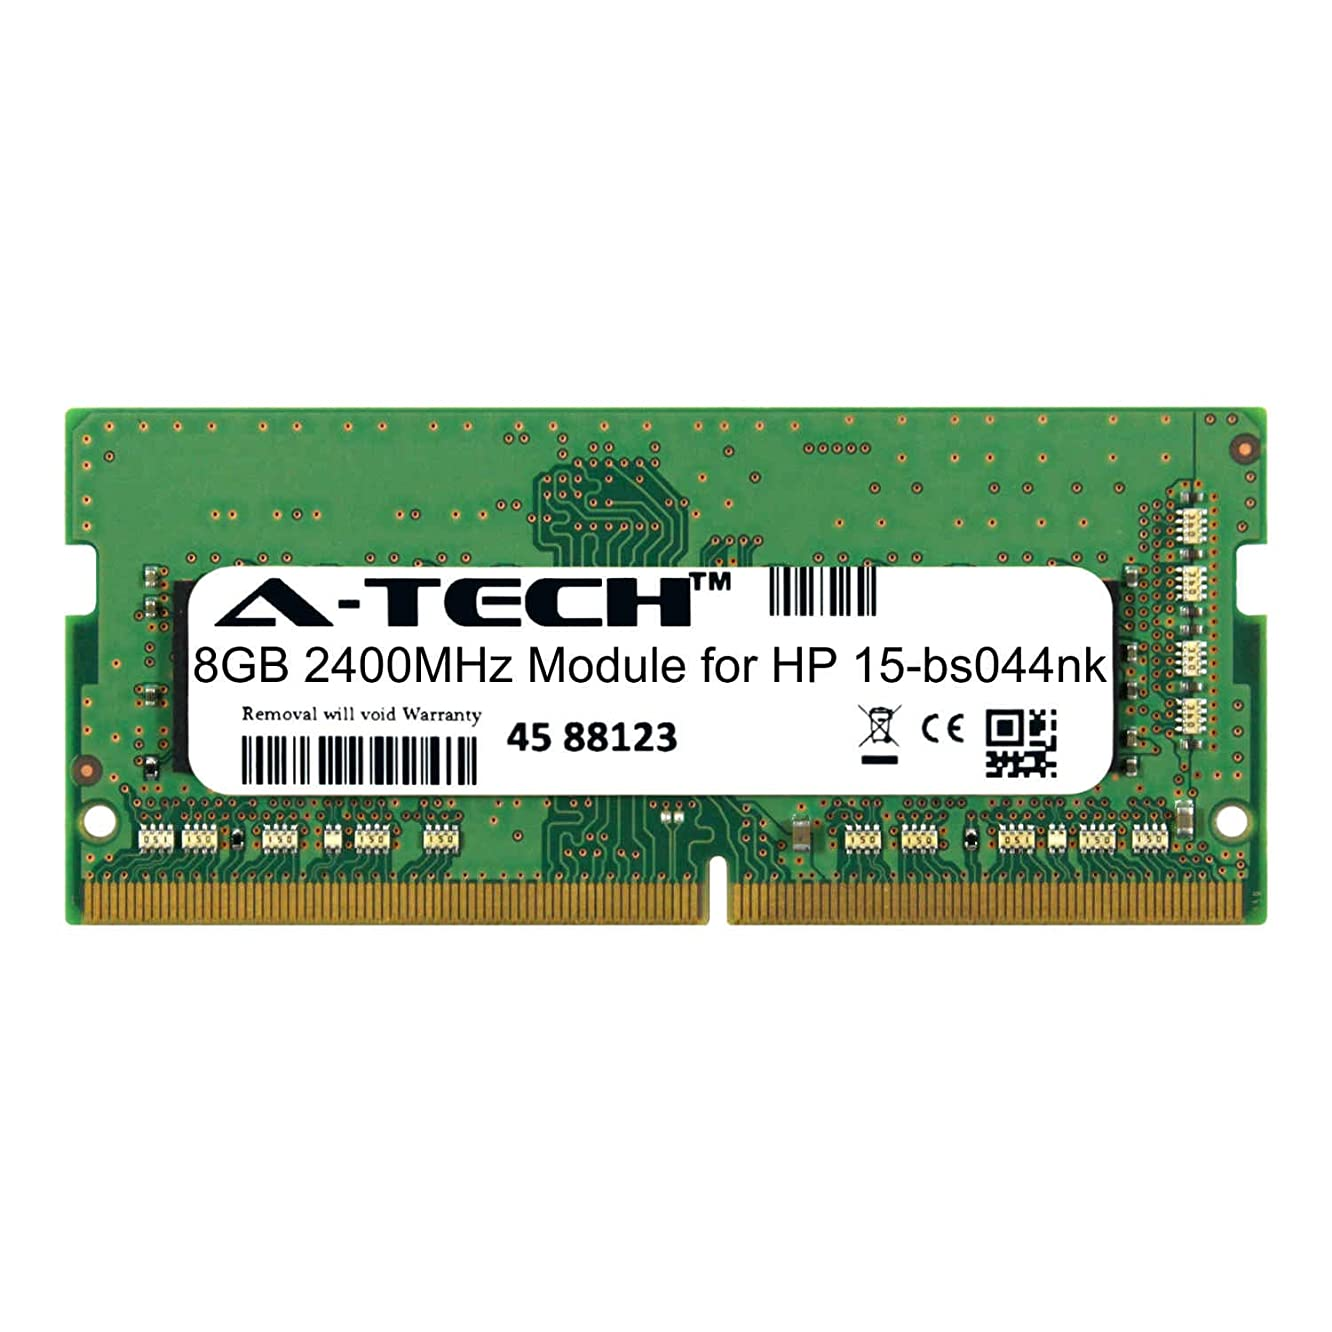 A-Tech 8GB Module for HP 15-bs044nk Laptop & Notebook Compatible DDR4 2400Mhz Memory Ram (ATMS380473A25827X1)